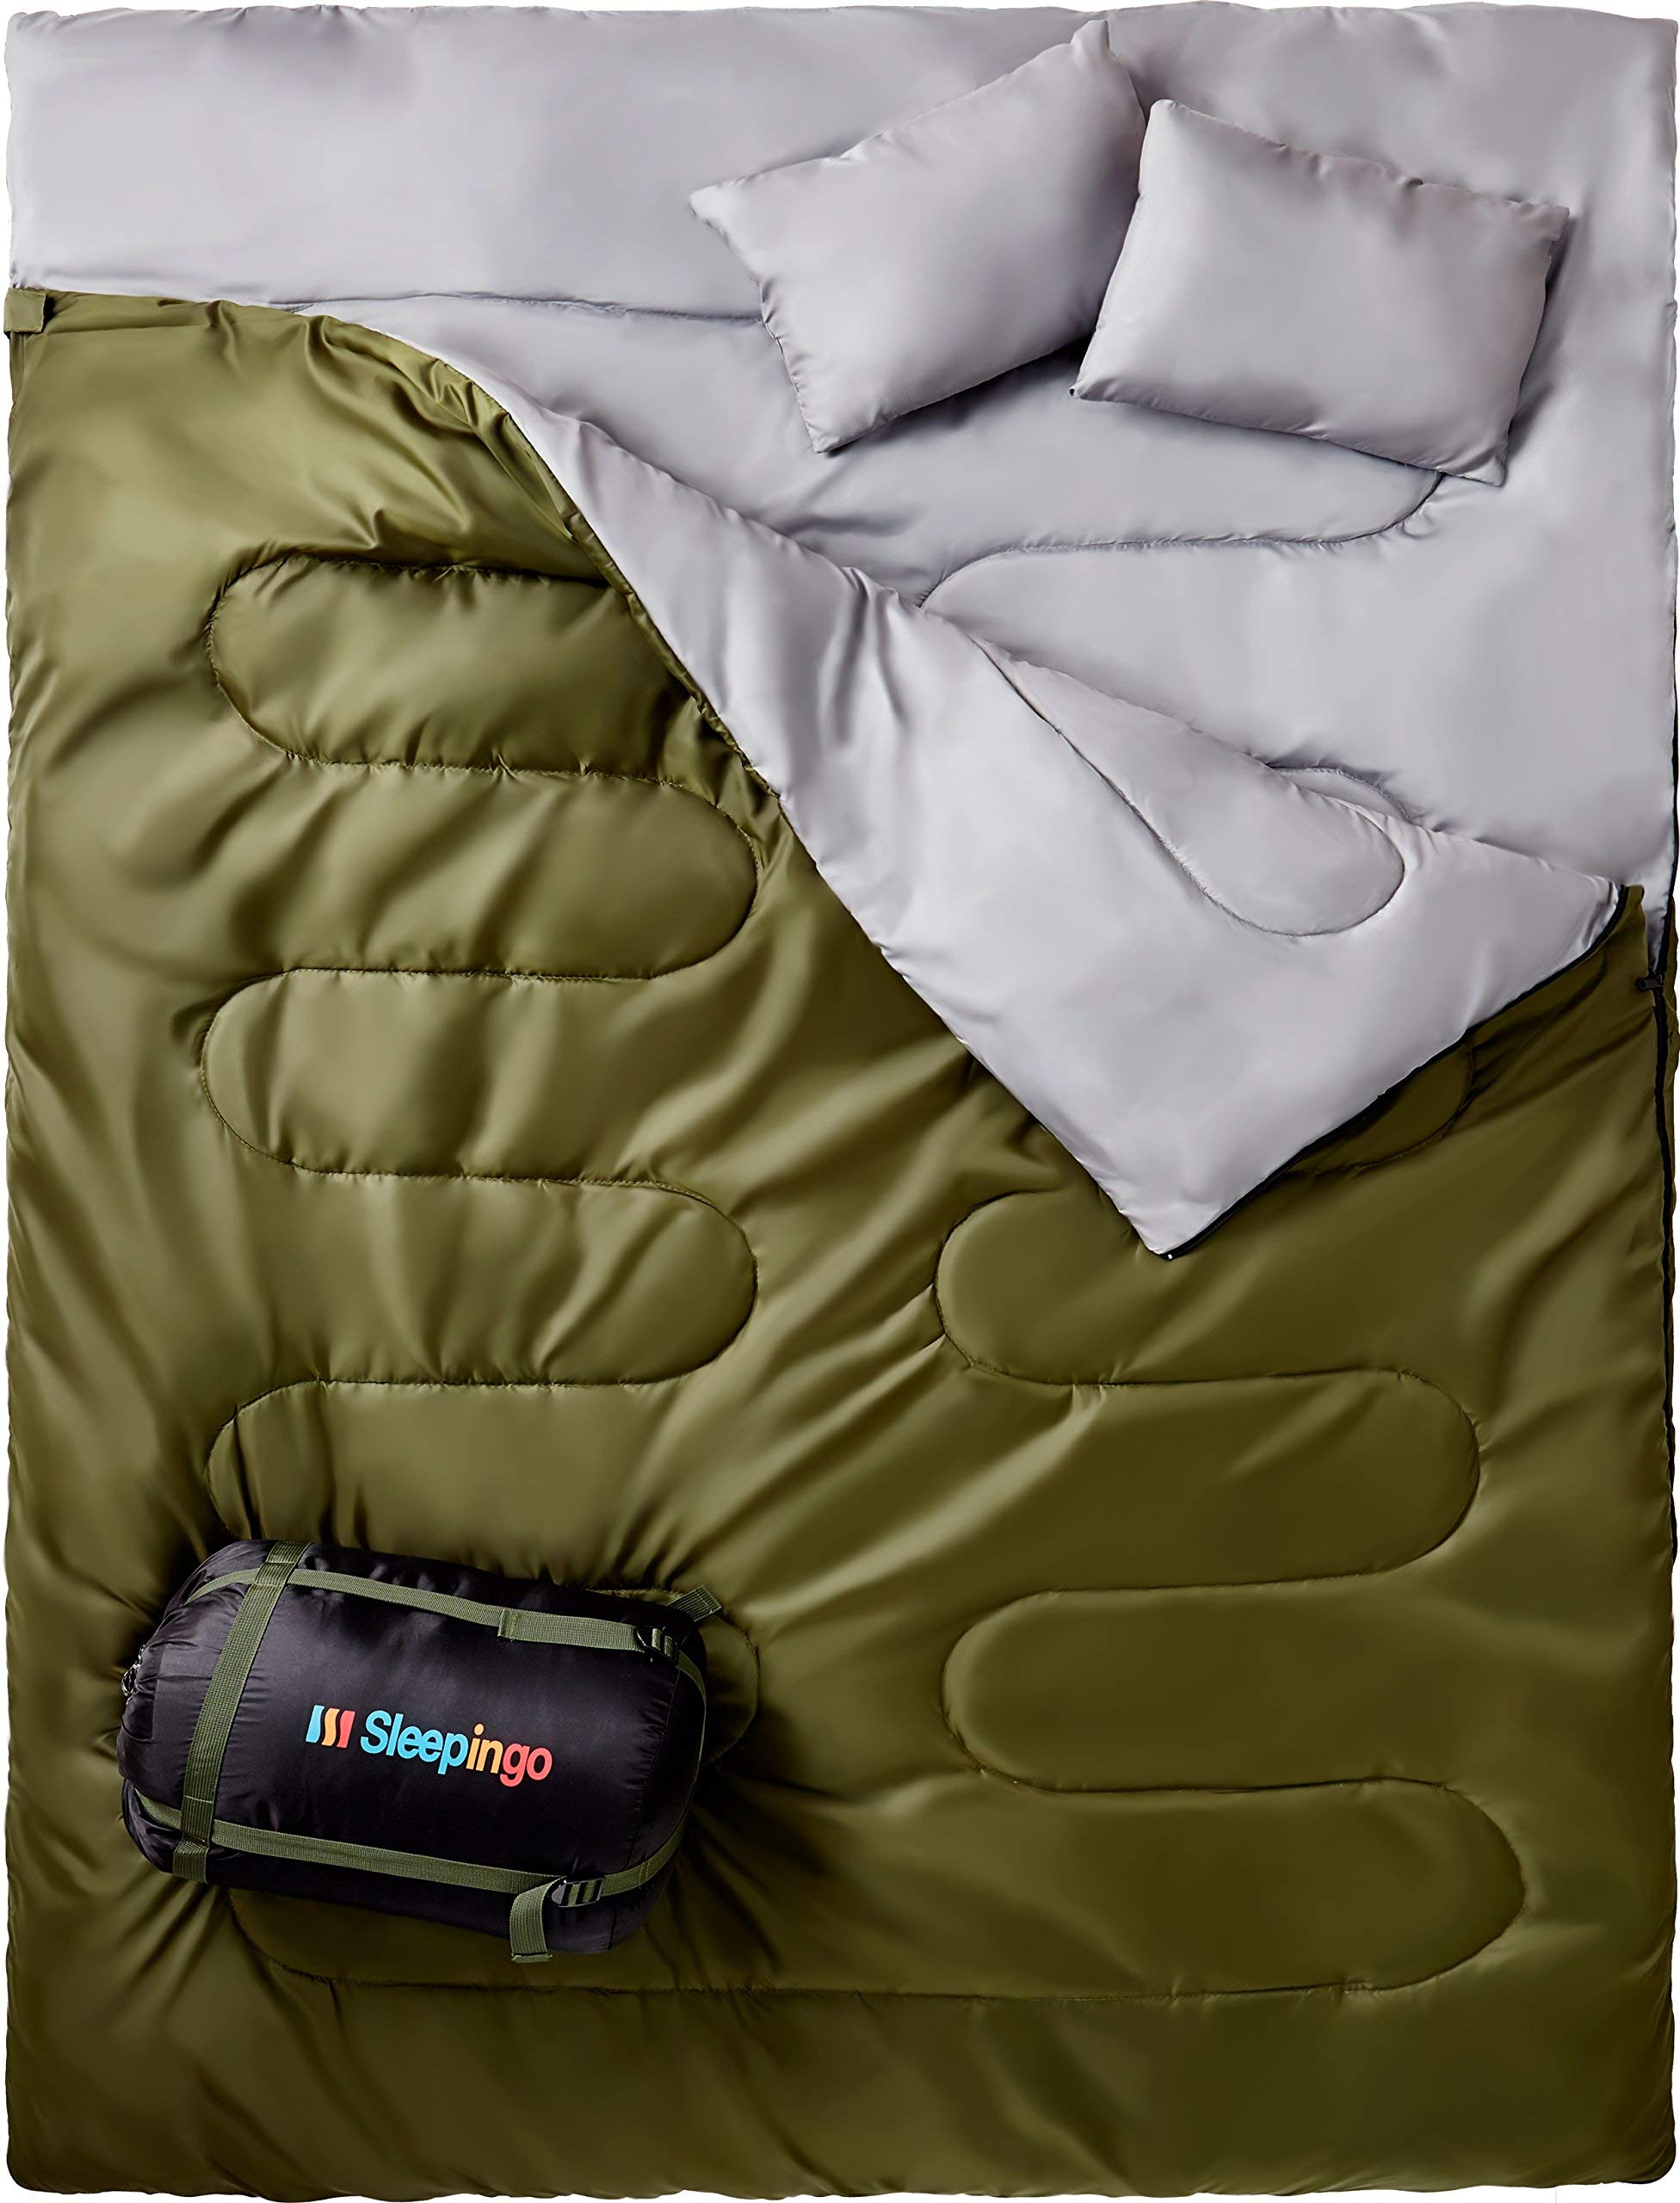 Sleepingo Double Sleeping Bag for Backpacking, Camping, Or Hiking. Queen Size XL! Cold Weather 2 Person Waterproof Sleeping Bag for Adults Or Teens. Truck, Tent, Or Sleeping Pad, Lightweight by Sleepingo